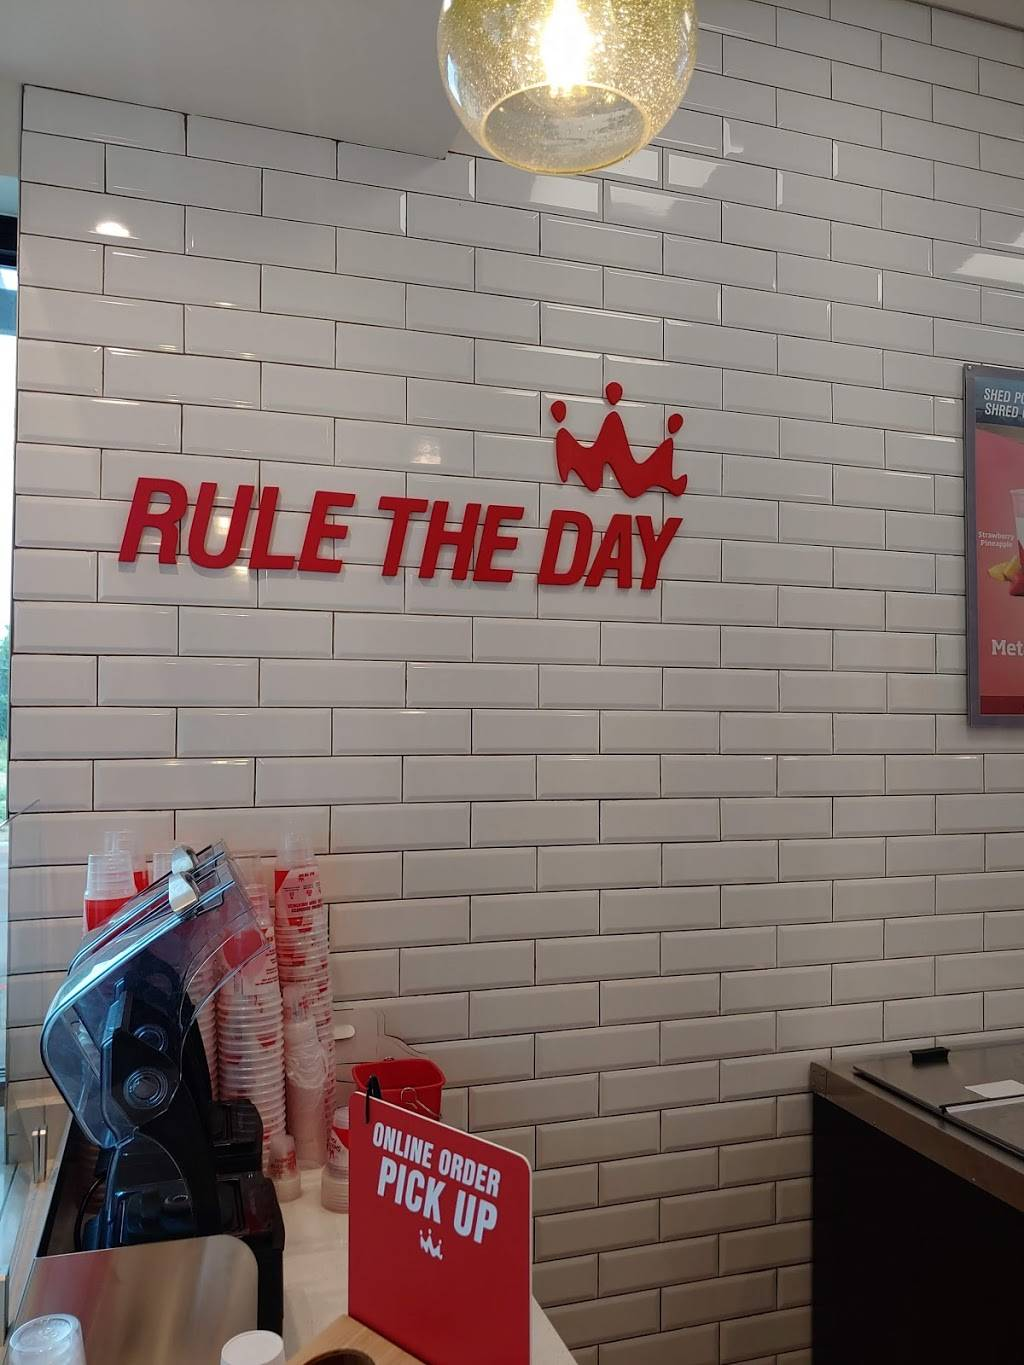 Smoothie King | meal delivery | 10222 Huebner Rd Ste 116, San Antonio, TX 78240, USA | 2104621322 OR +1 210-462-1322